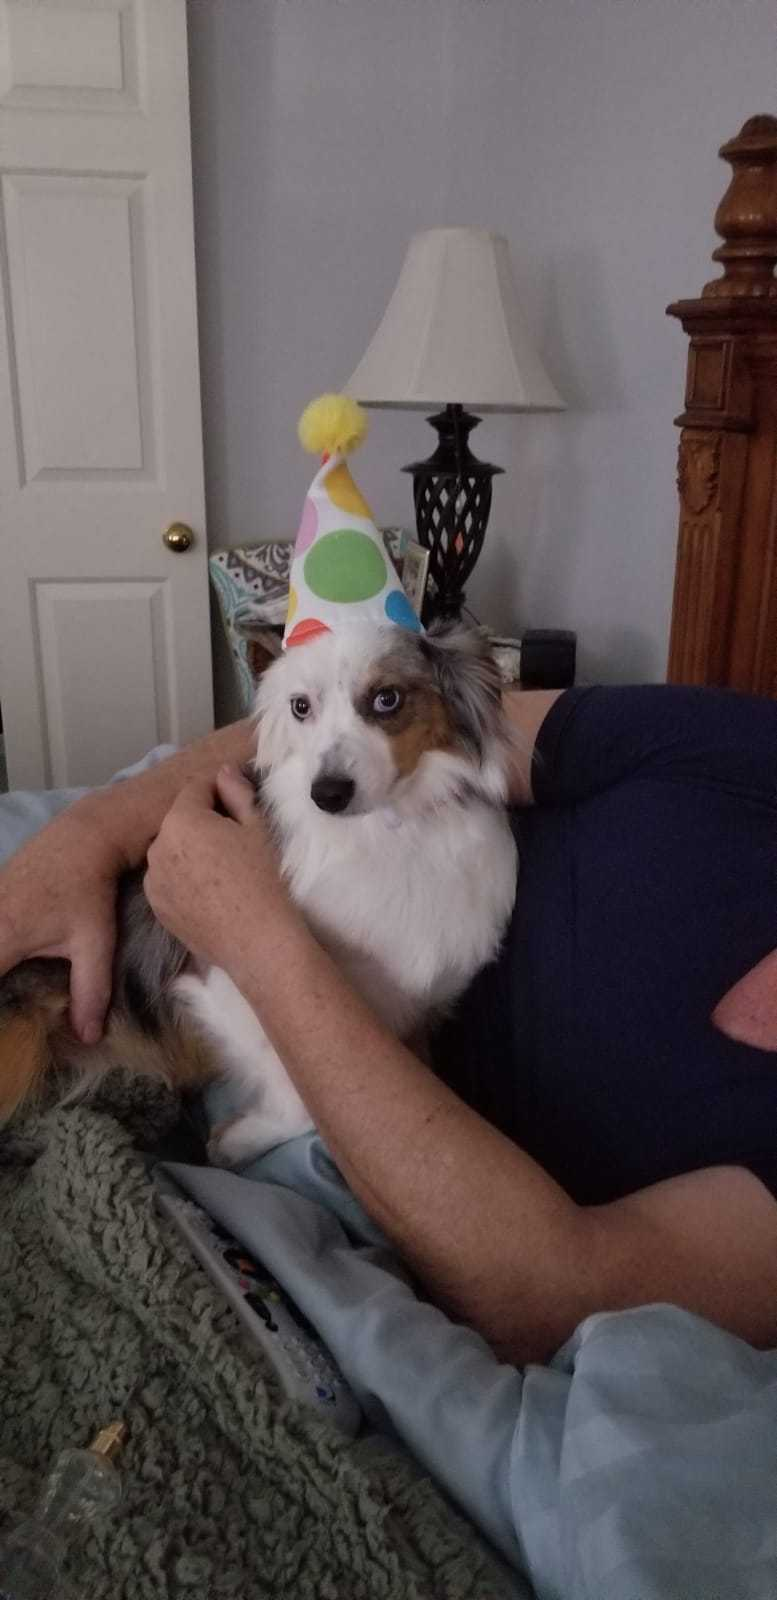 This ain't a meme but can we have a happy birthday for my dog?